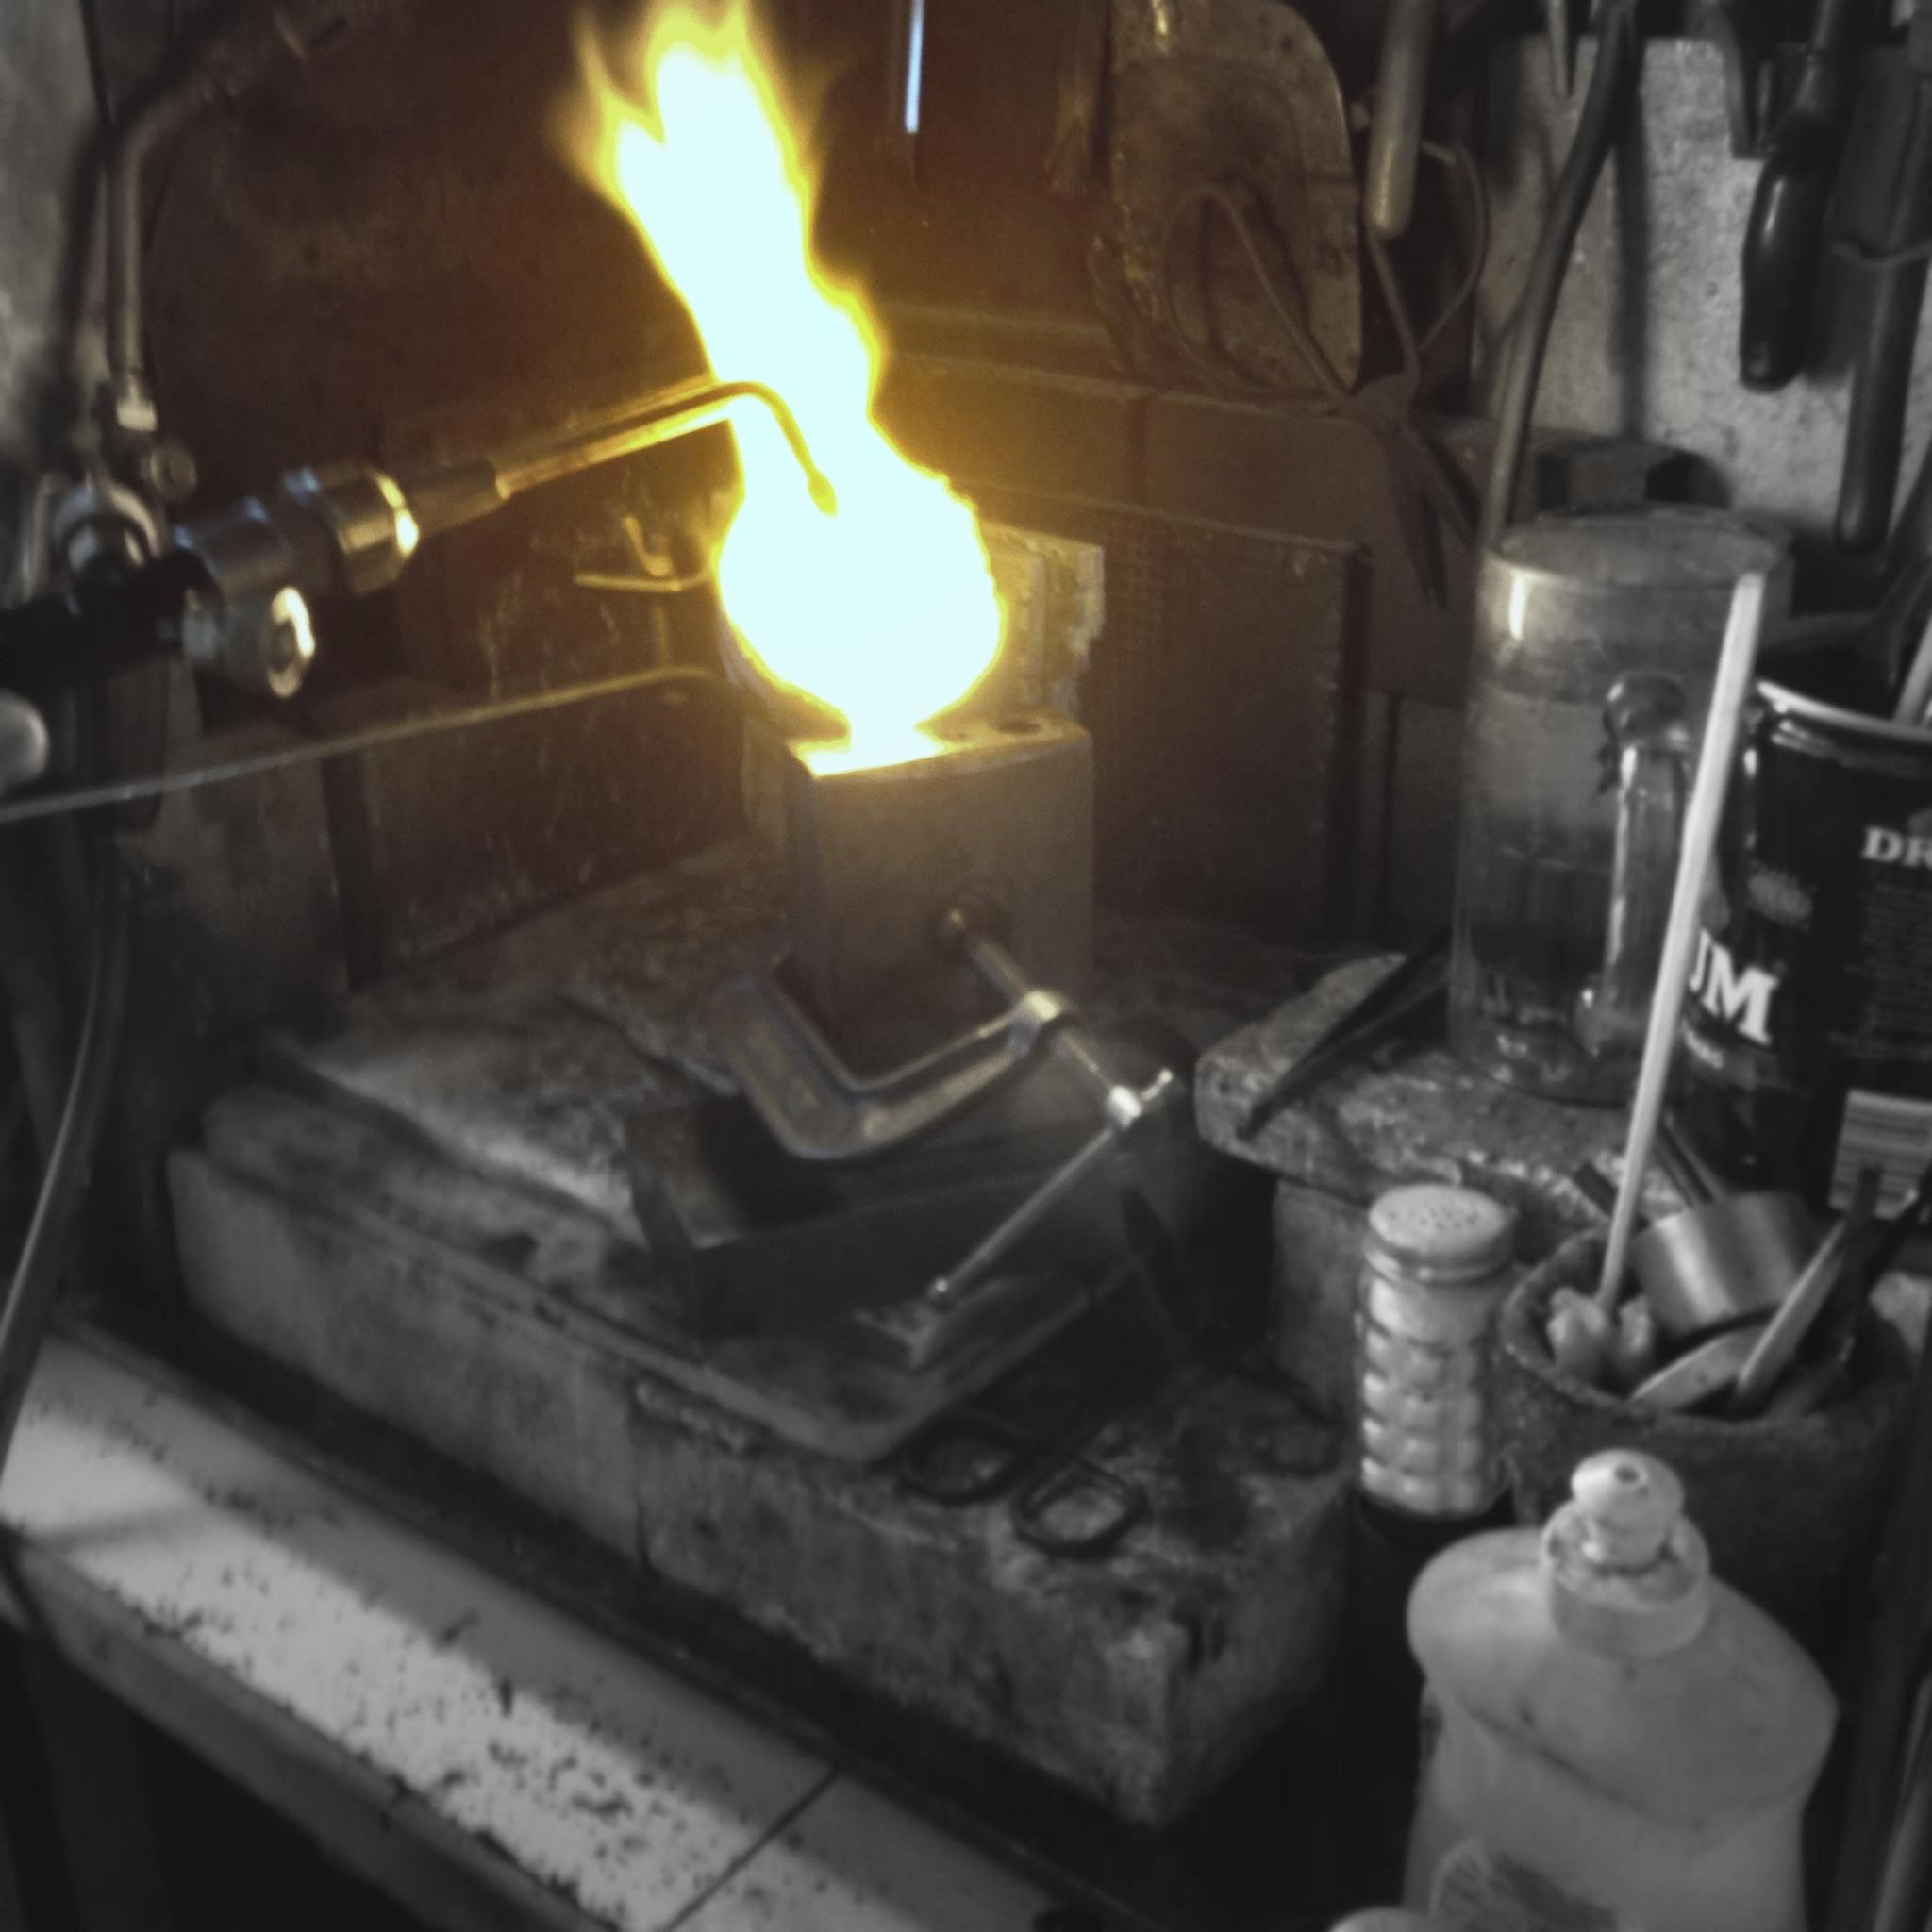 molten silver poured into the ingot device